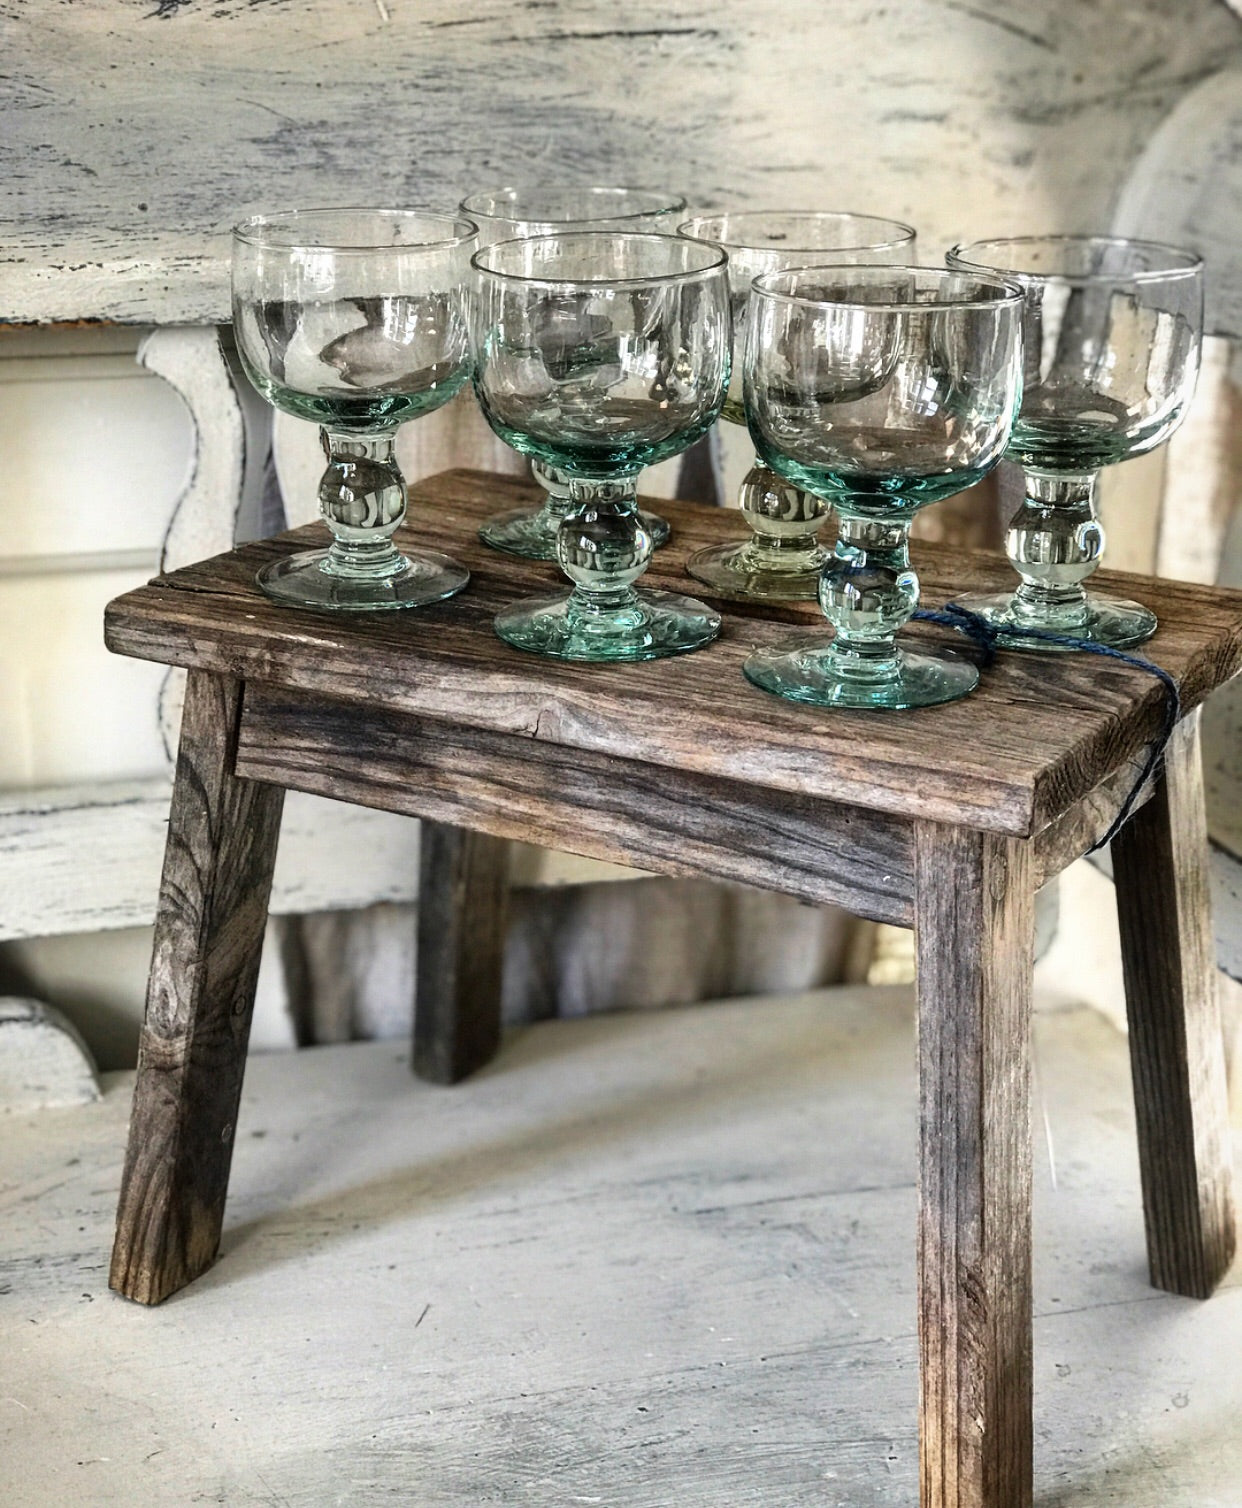 Old handmade French wine goblets on footed stem.